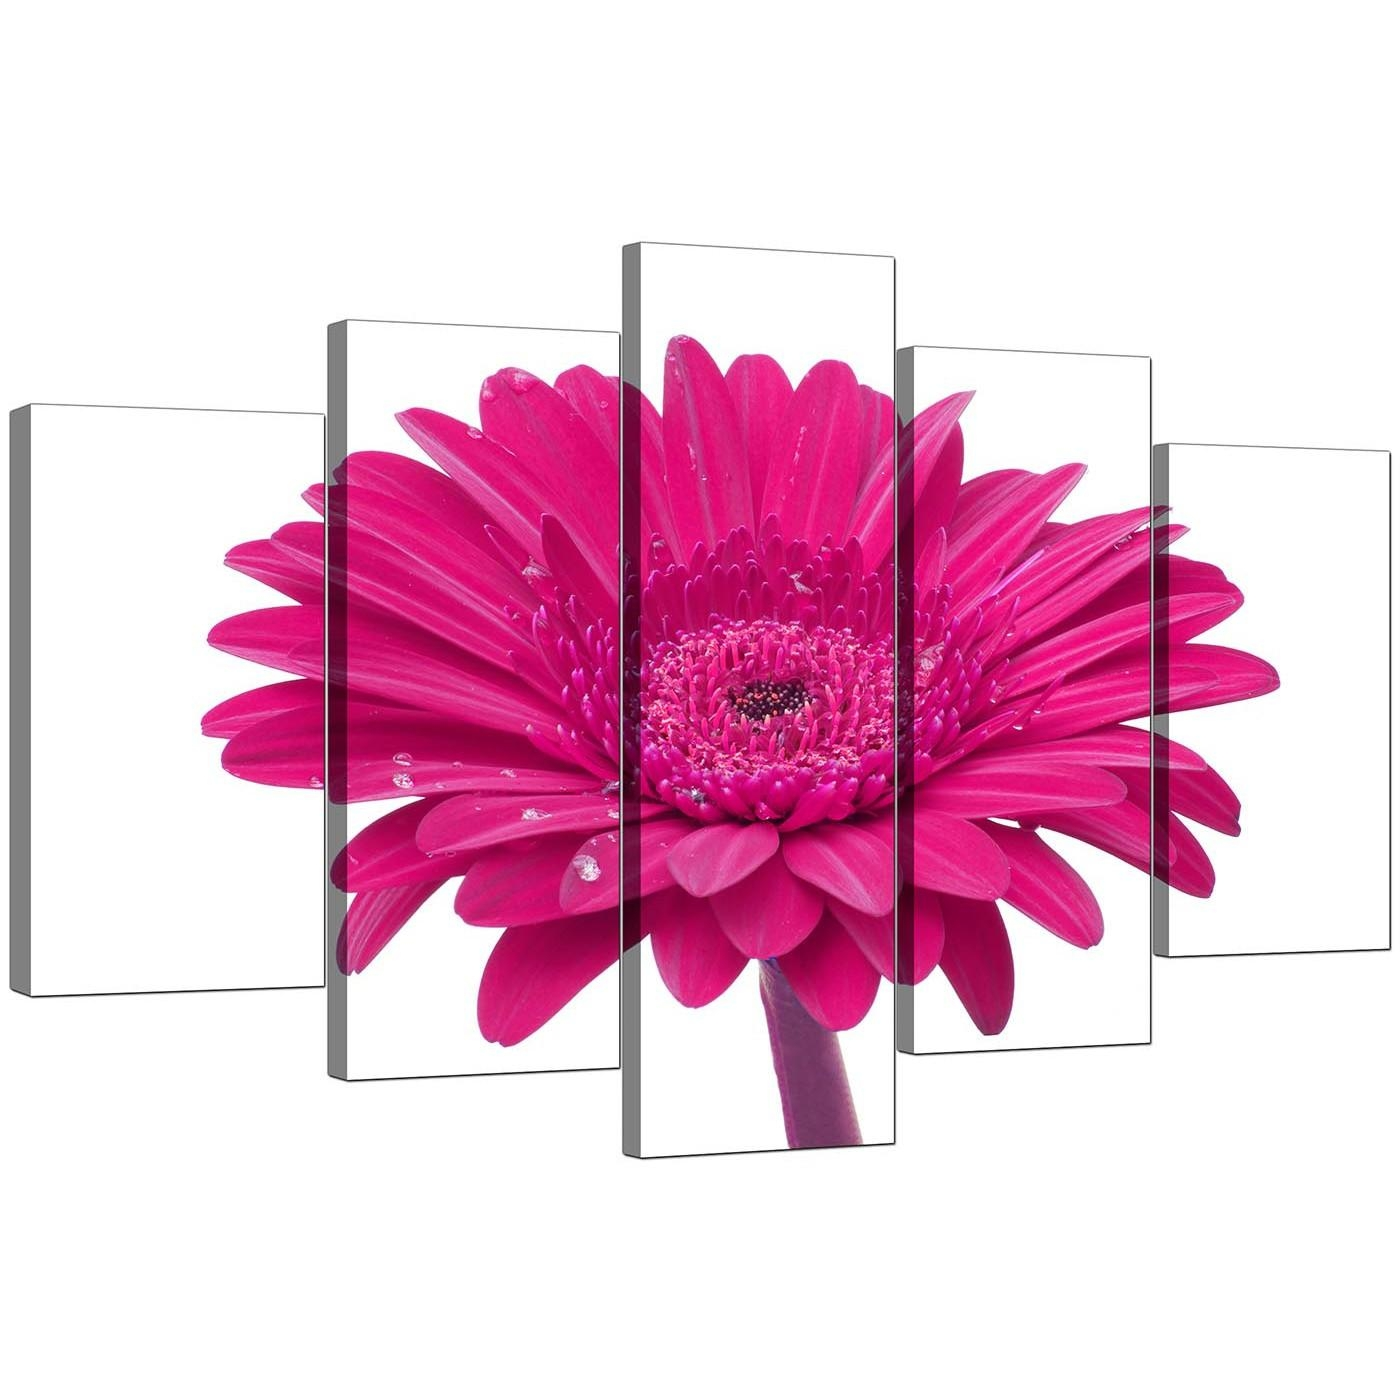 Extra Large Flower Canvas Wall Art 5 Piece In Pink Throughout Pink Flower Wall Art (View 6 of 20)